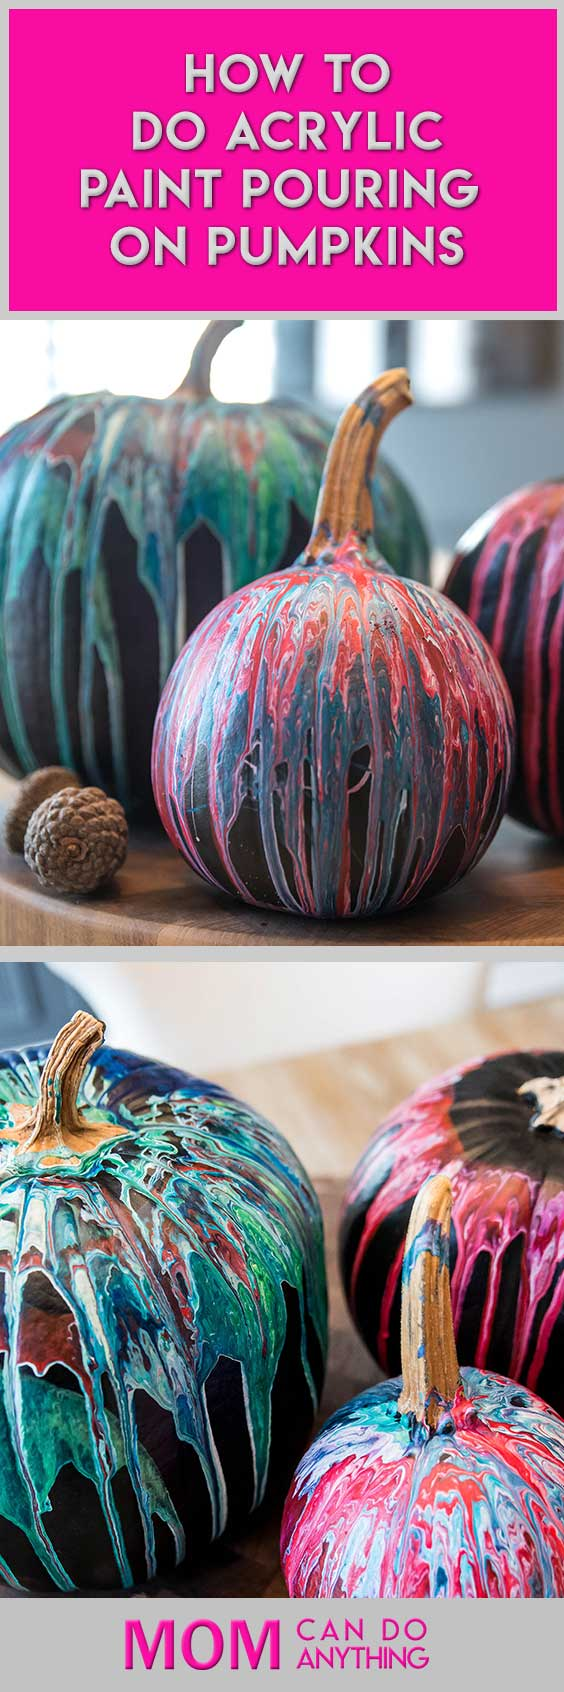 Paint-pouring-on-pumpkins